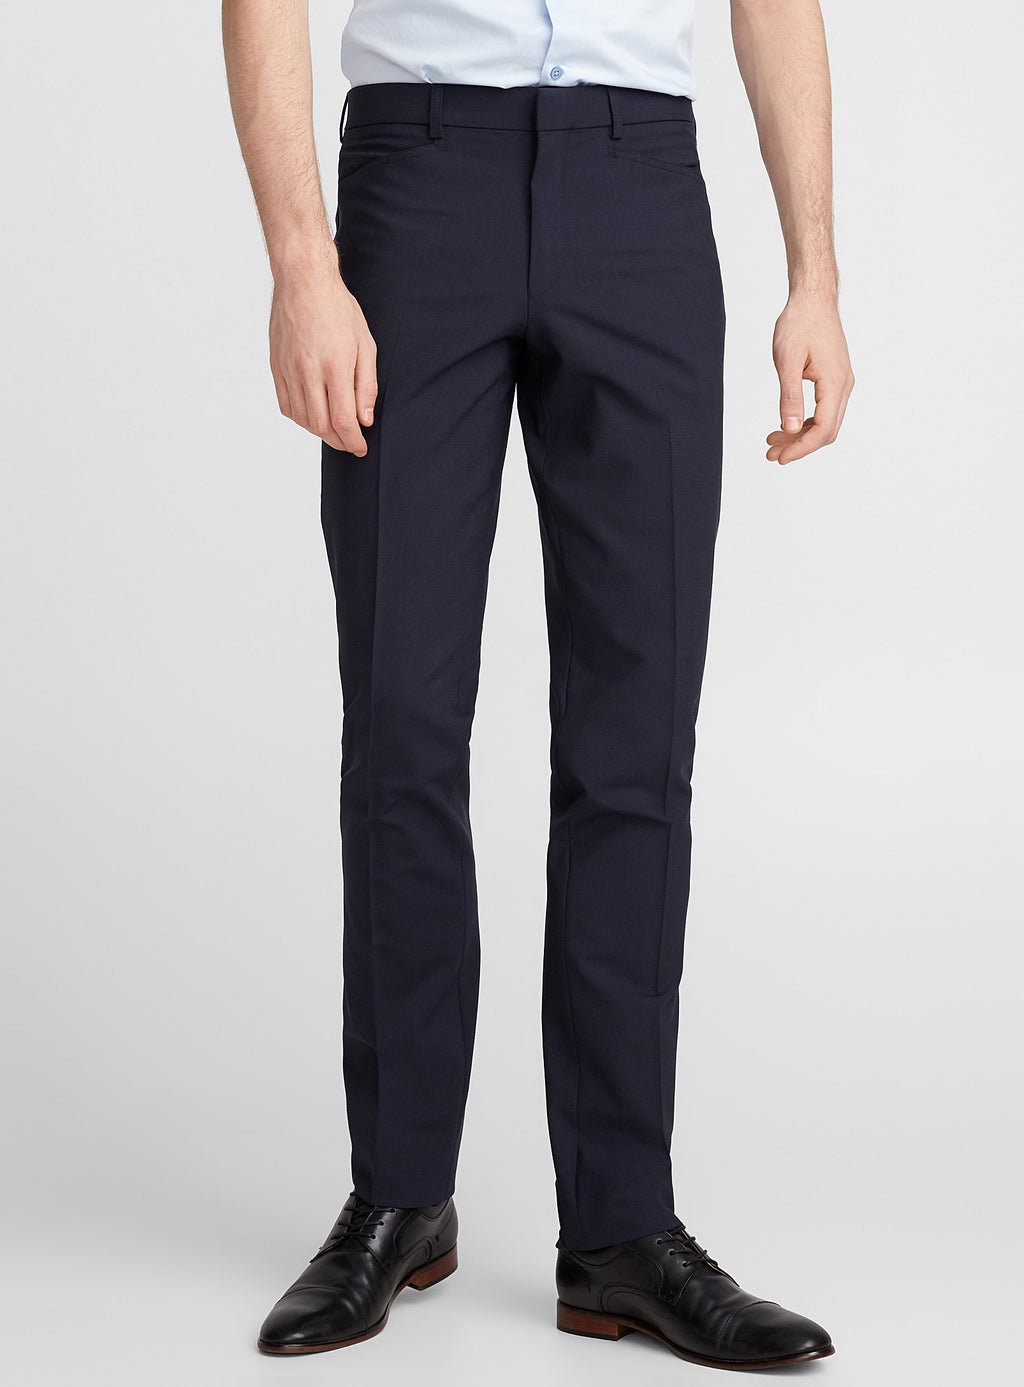 Franco • Navy • Travel Pants • Slim Fit • Stretch • Riviera by Jack Victor •